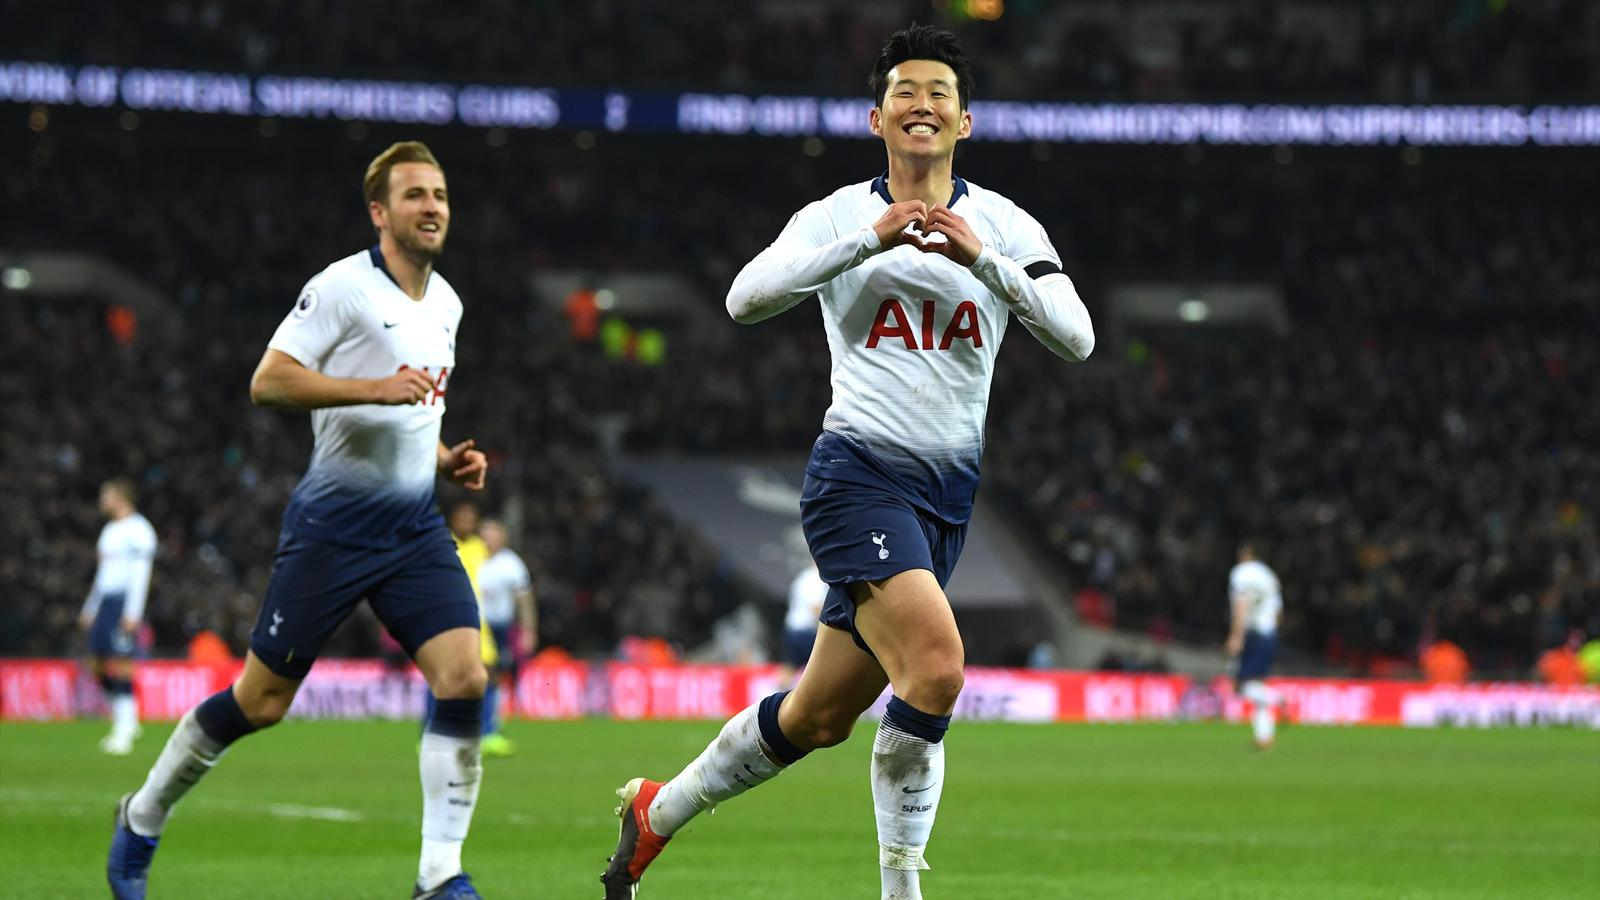 tottenham smash chelsea in maurizio sarri u2019s first league